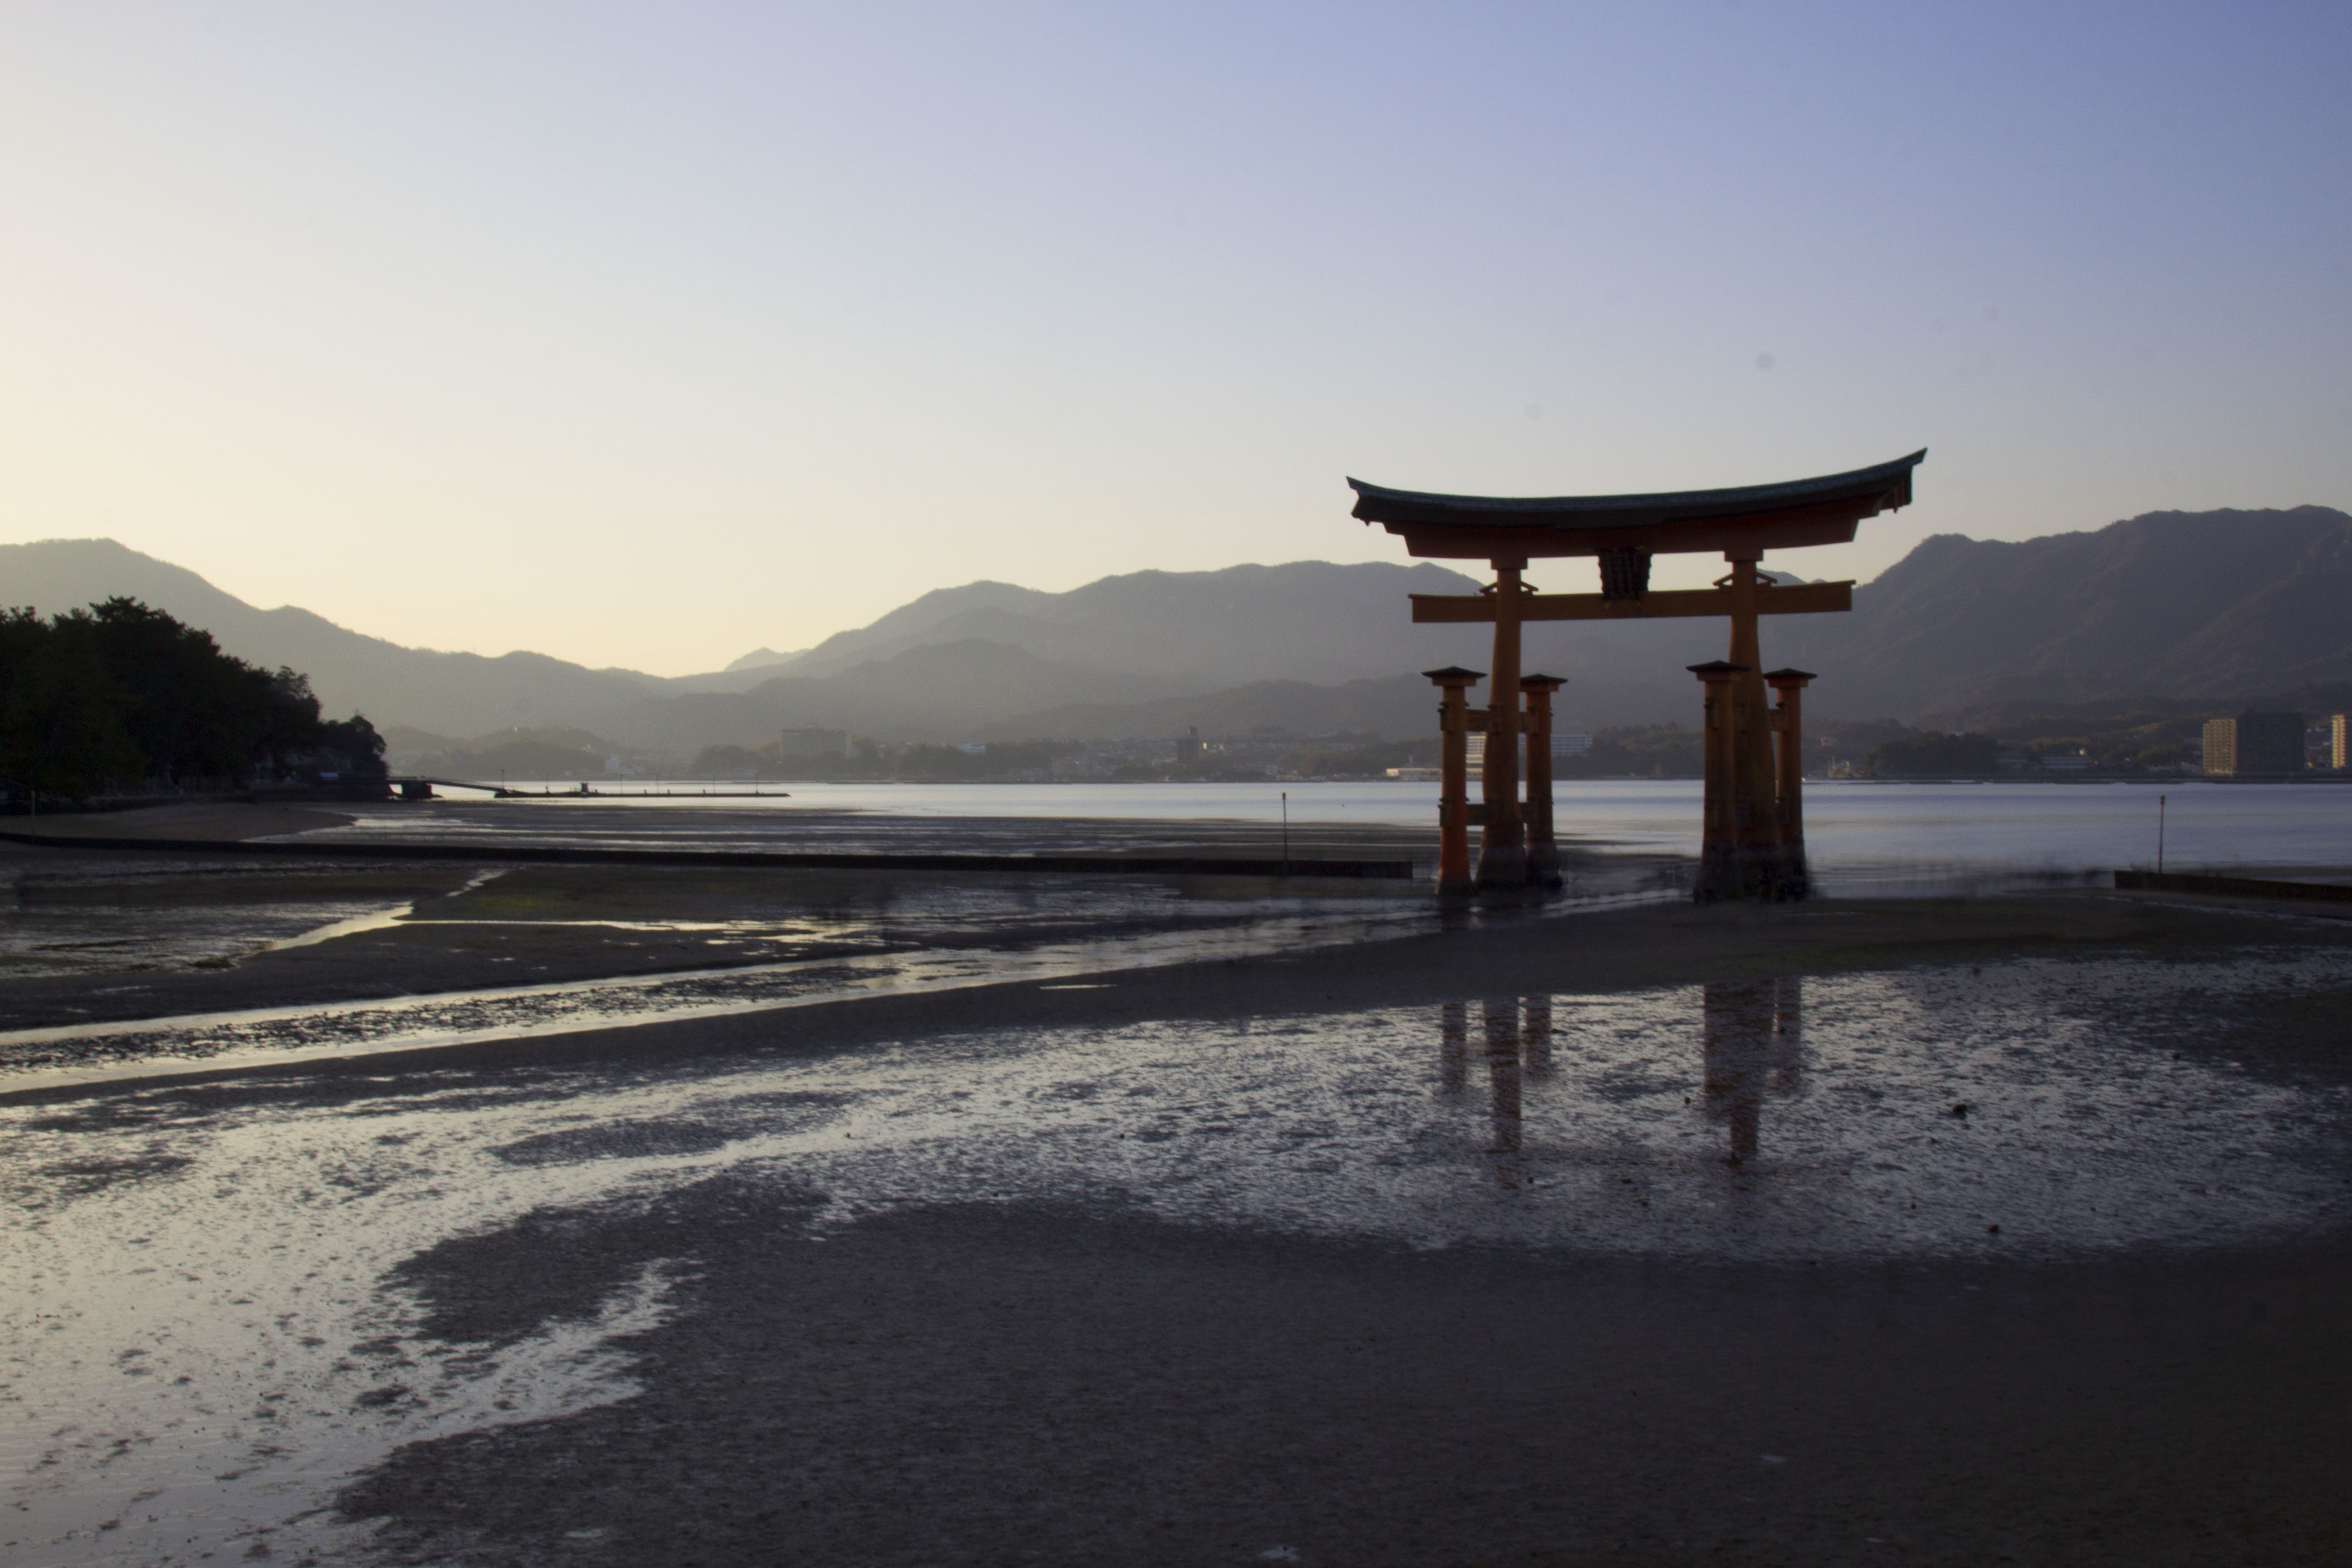 Miyajima: Discover the Japanese Island without the crowds.